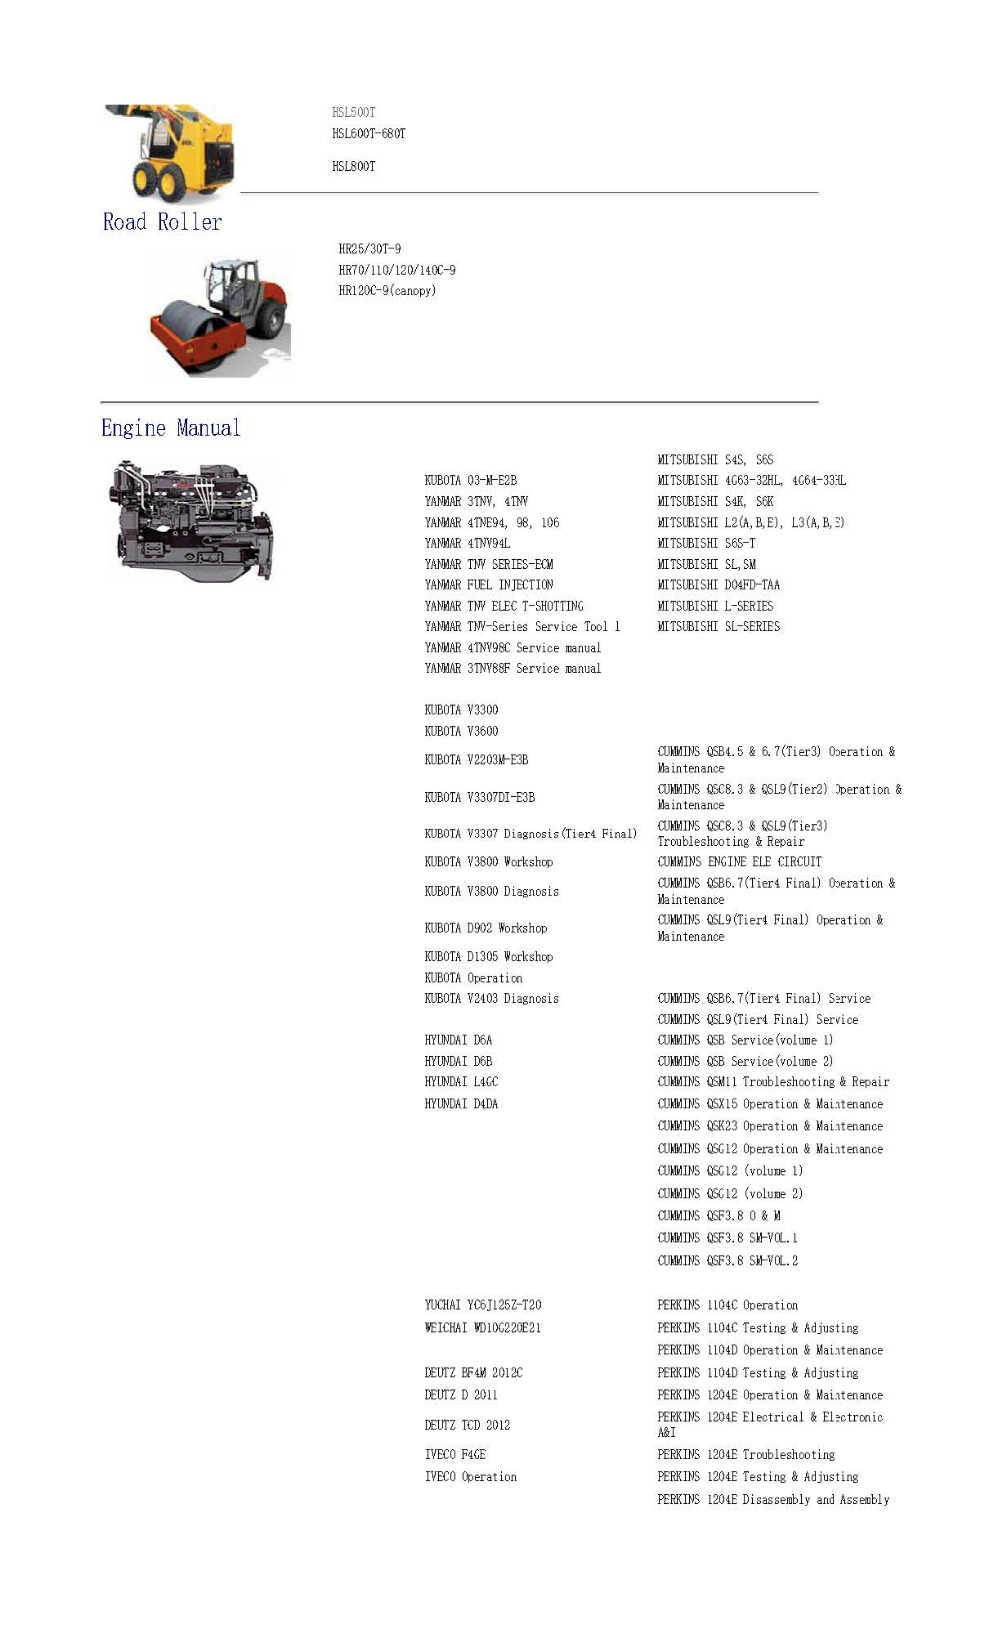 For Hyundai Robex Construction Equipment Engine Service Manuals Wiring Diagram Cummins Qsx15 Sm 1 2 3 4